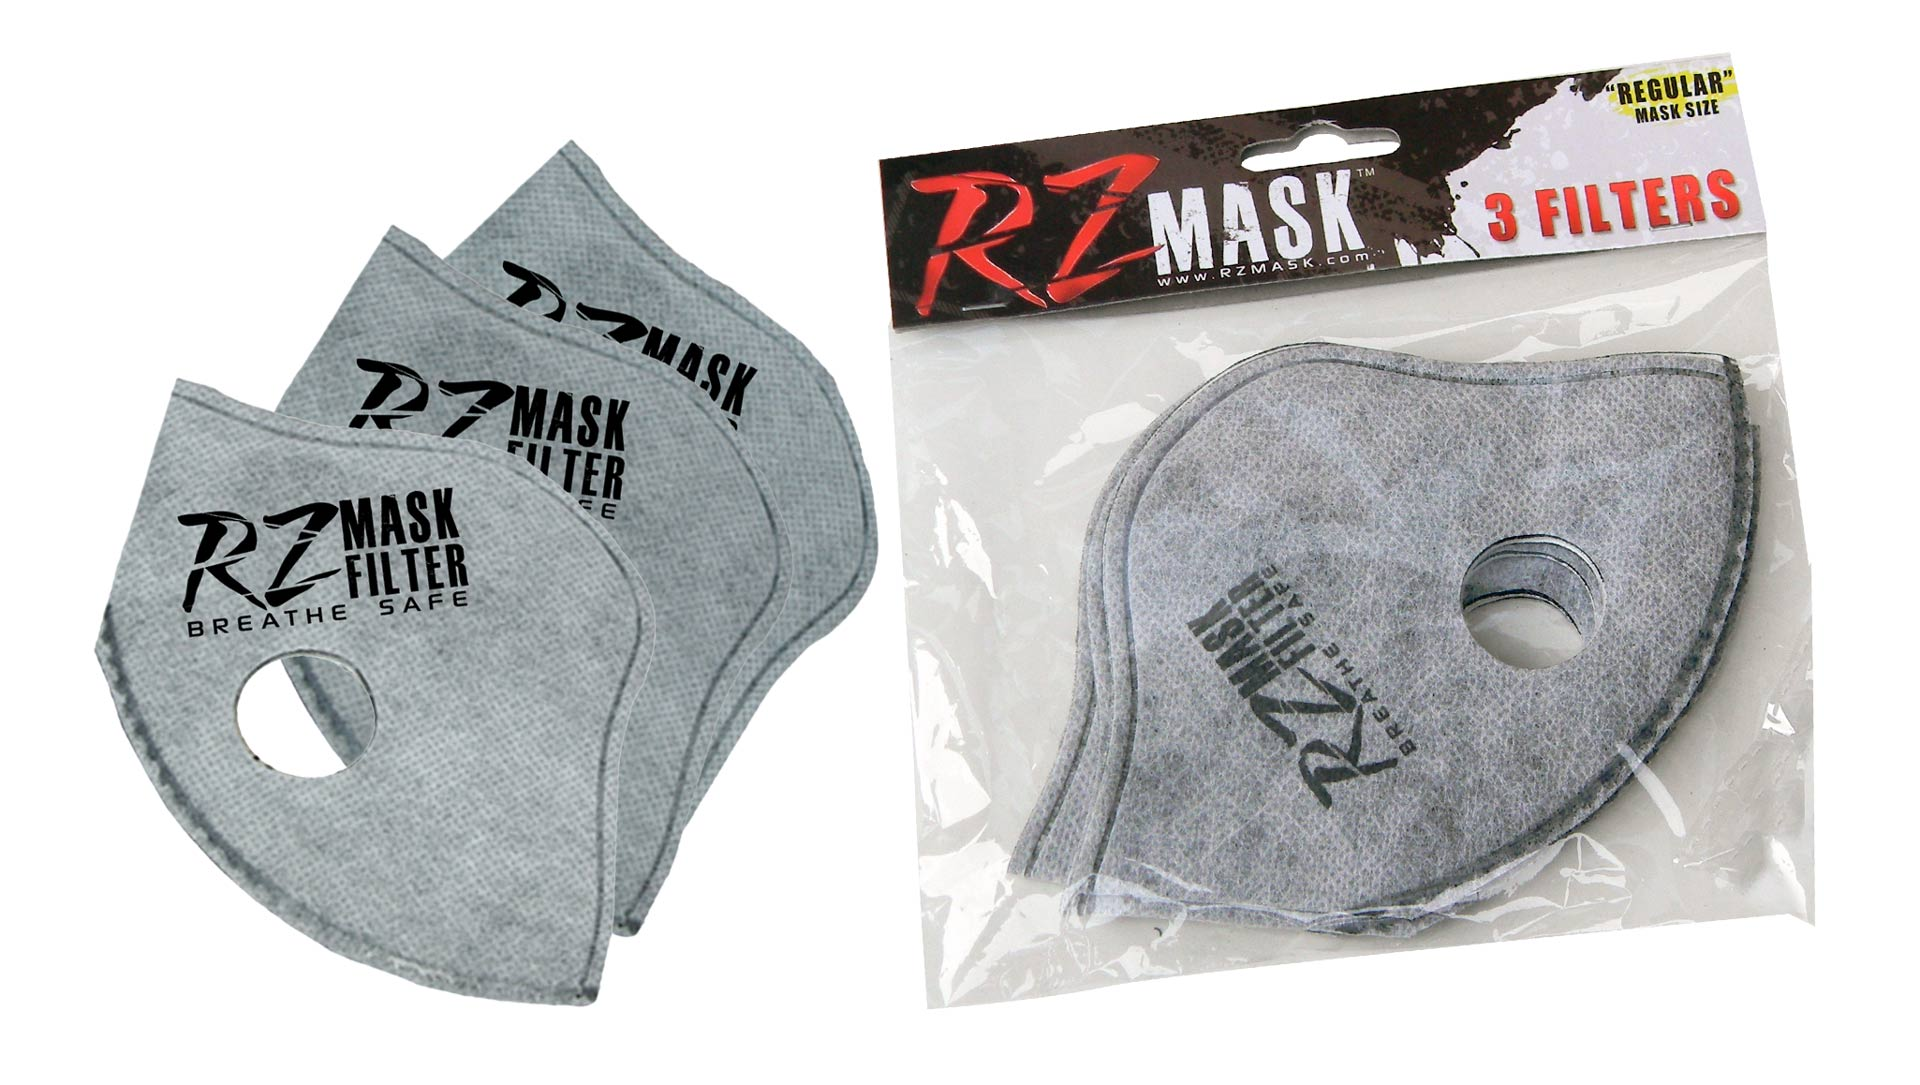 RZ MASK REPLACEMENT FILTERS